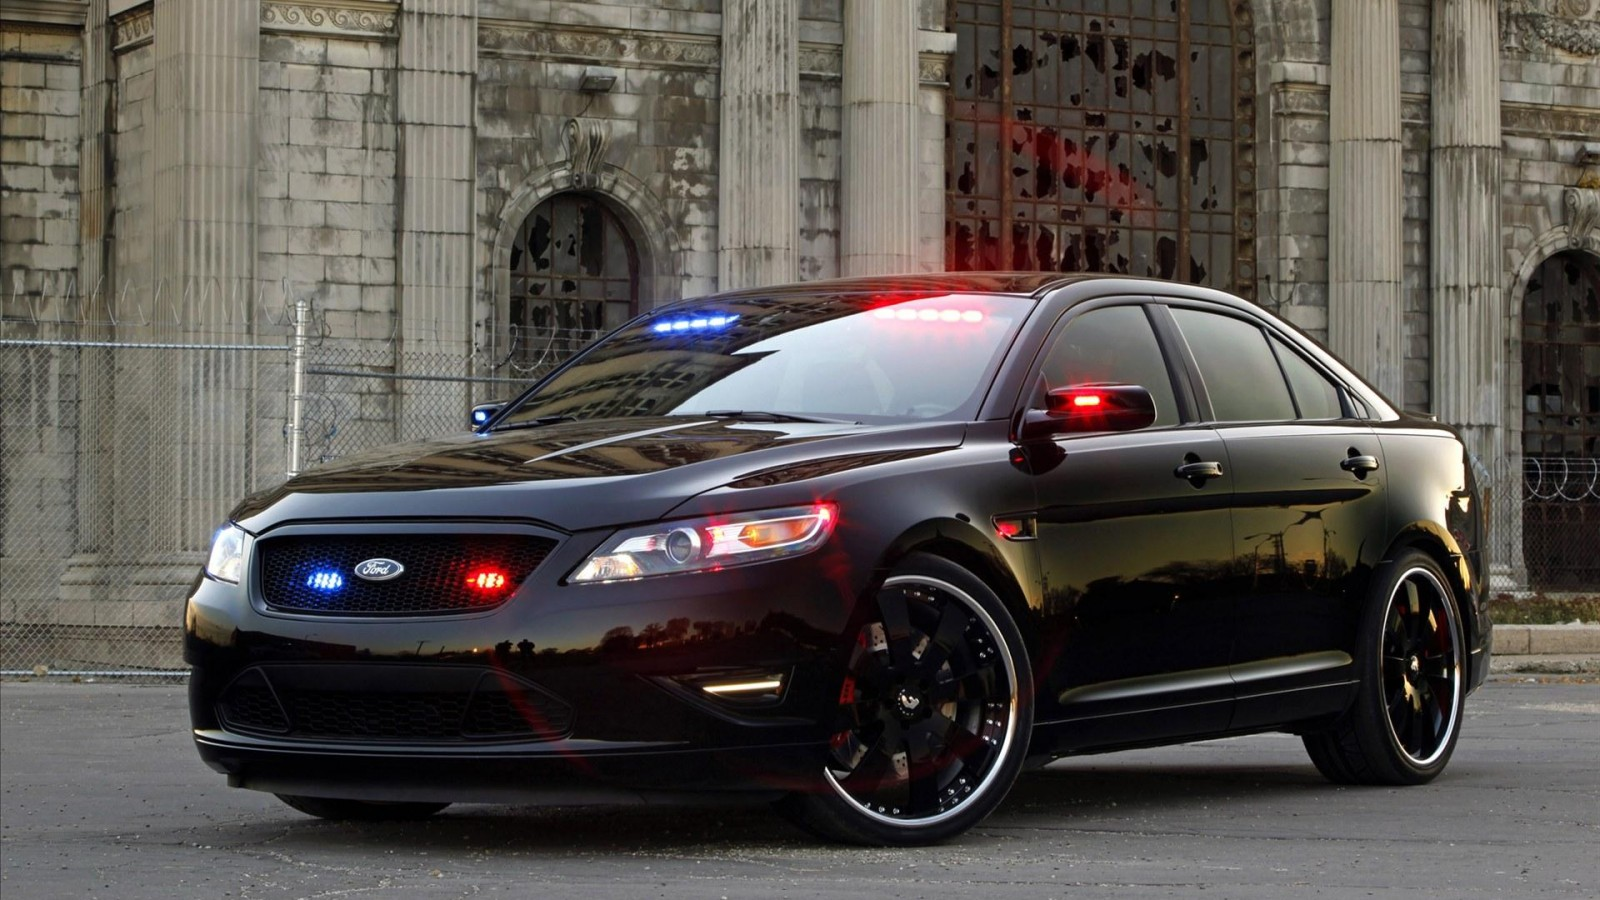 2019 Ford Stealth Police Interceptor Concept photo - 1